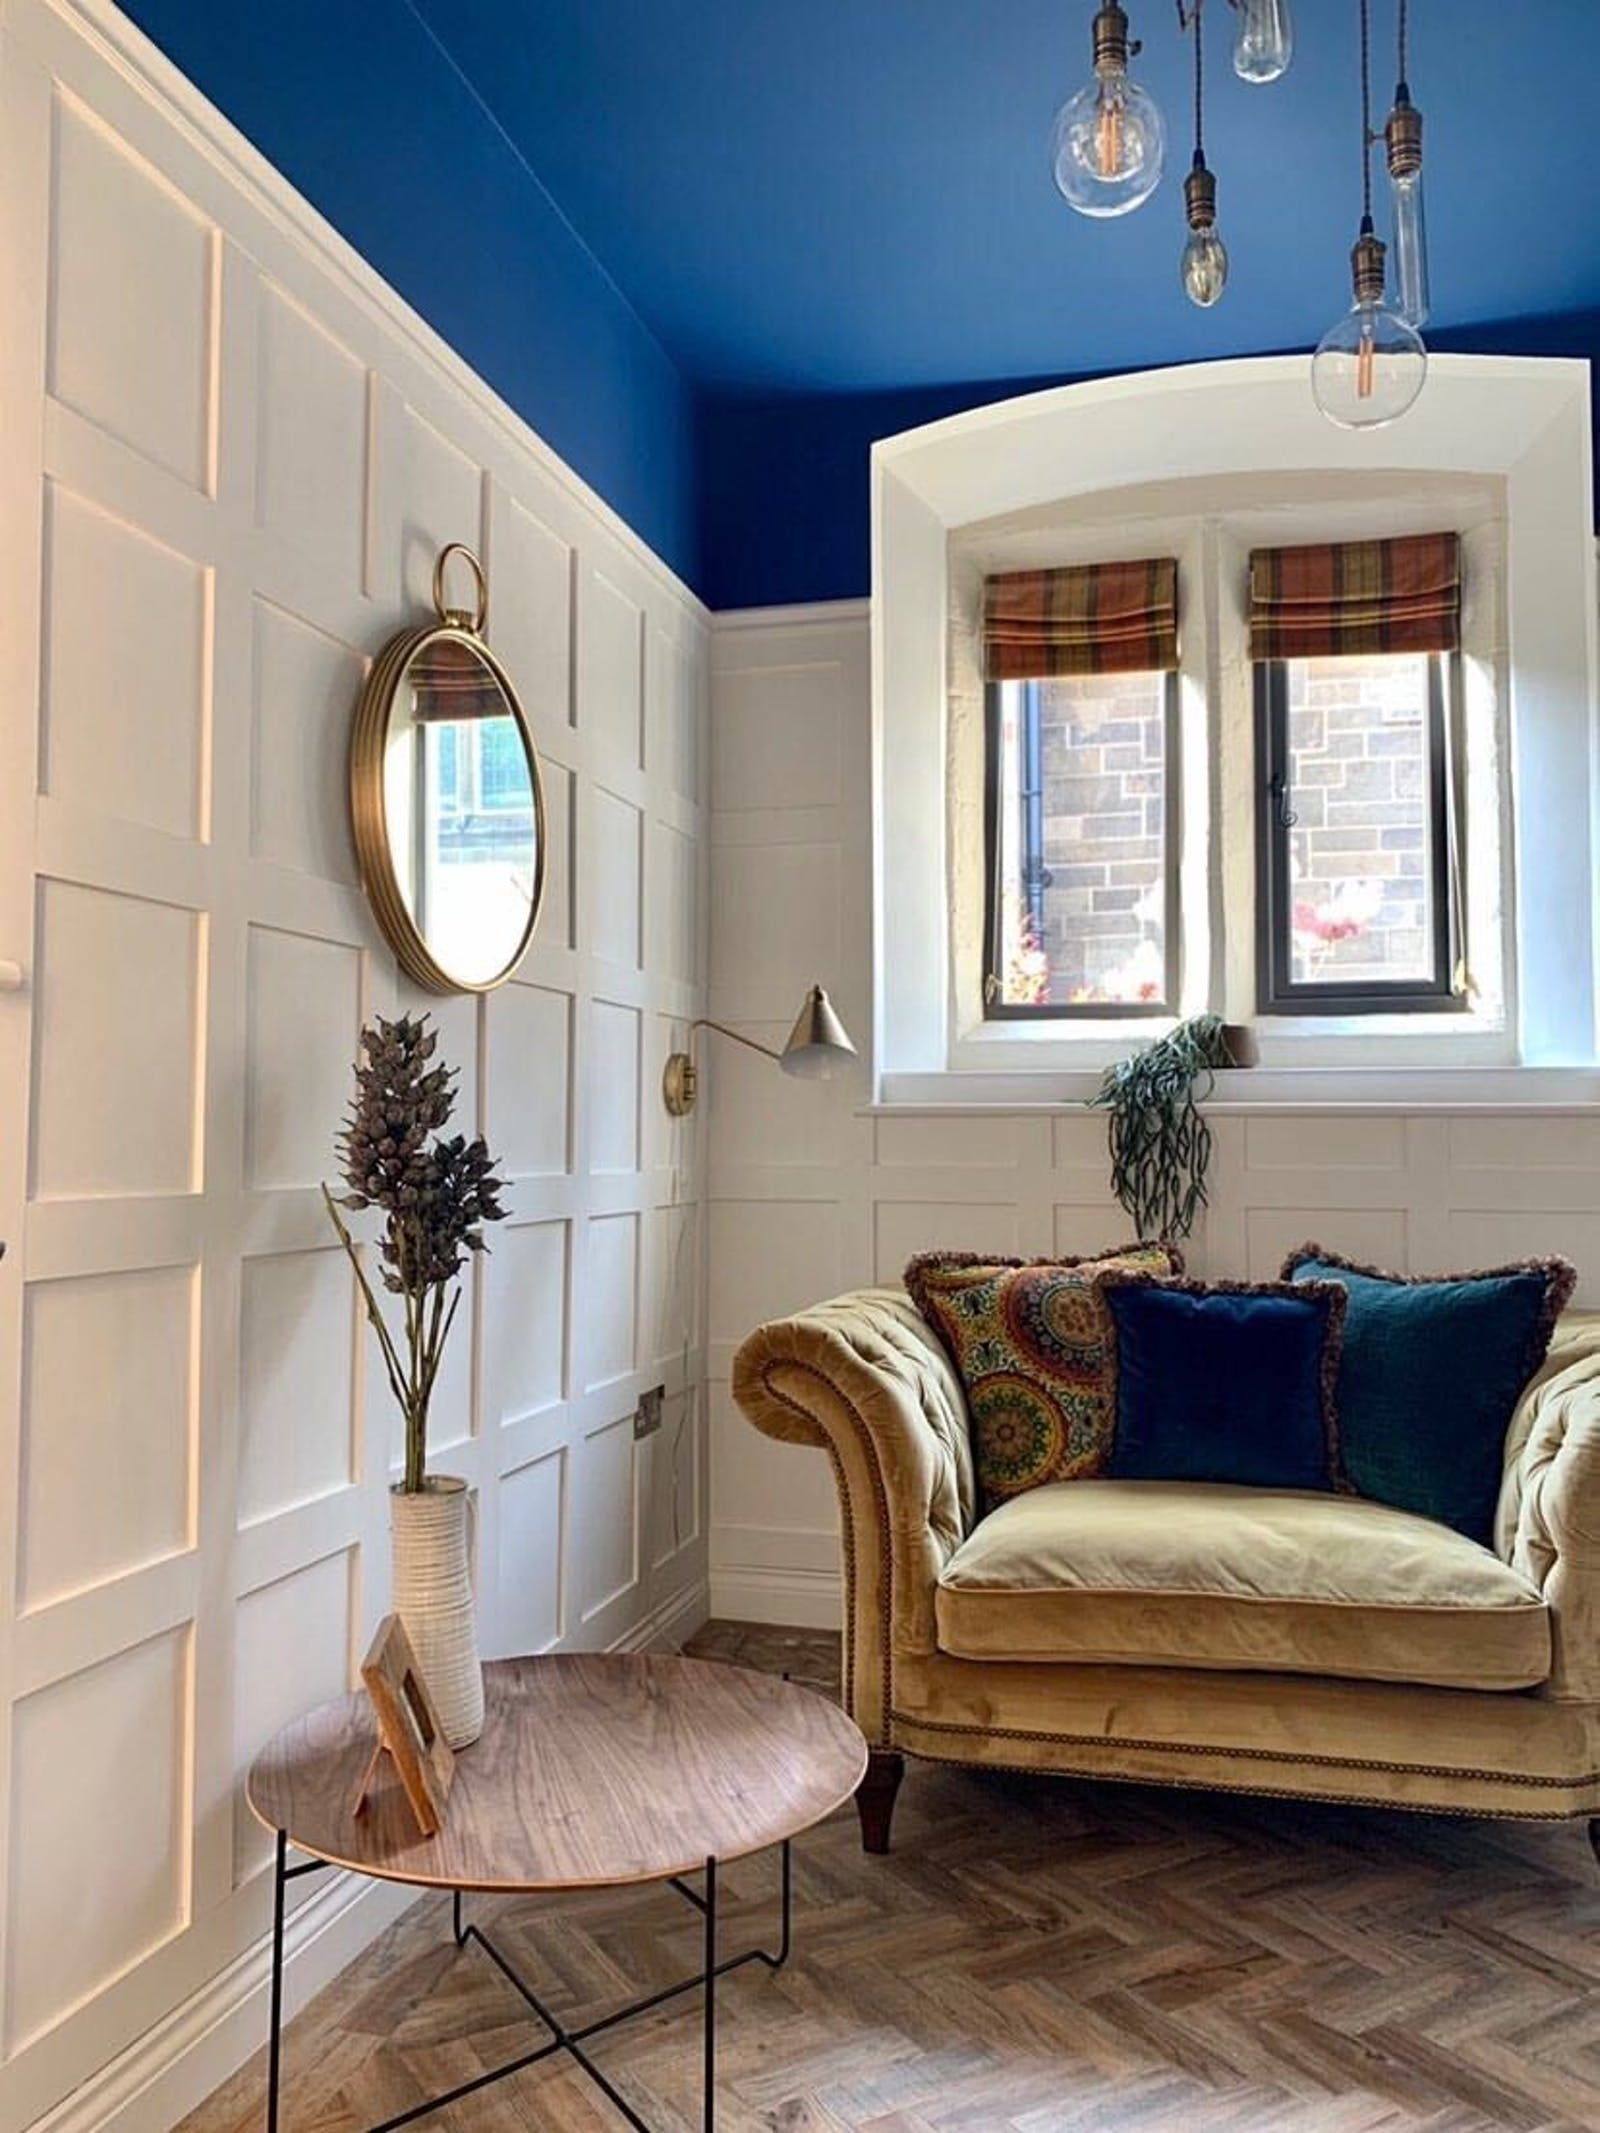 Ceiling painted in Lick Blue 111 - a vibrant, cobalt blue